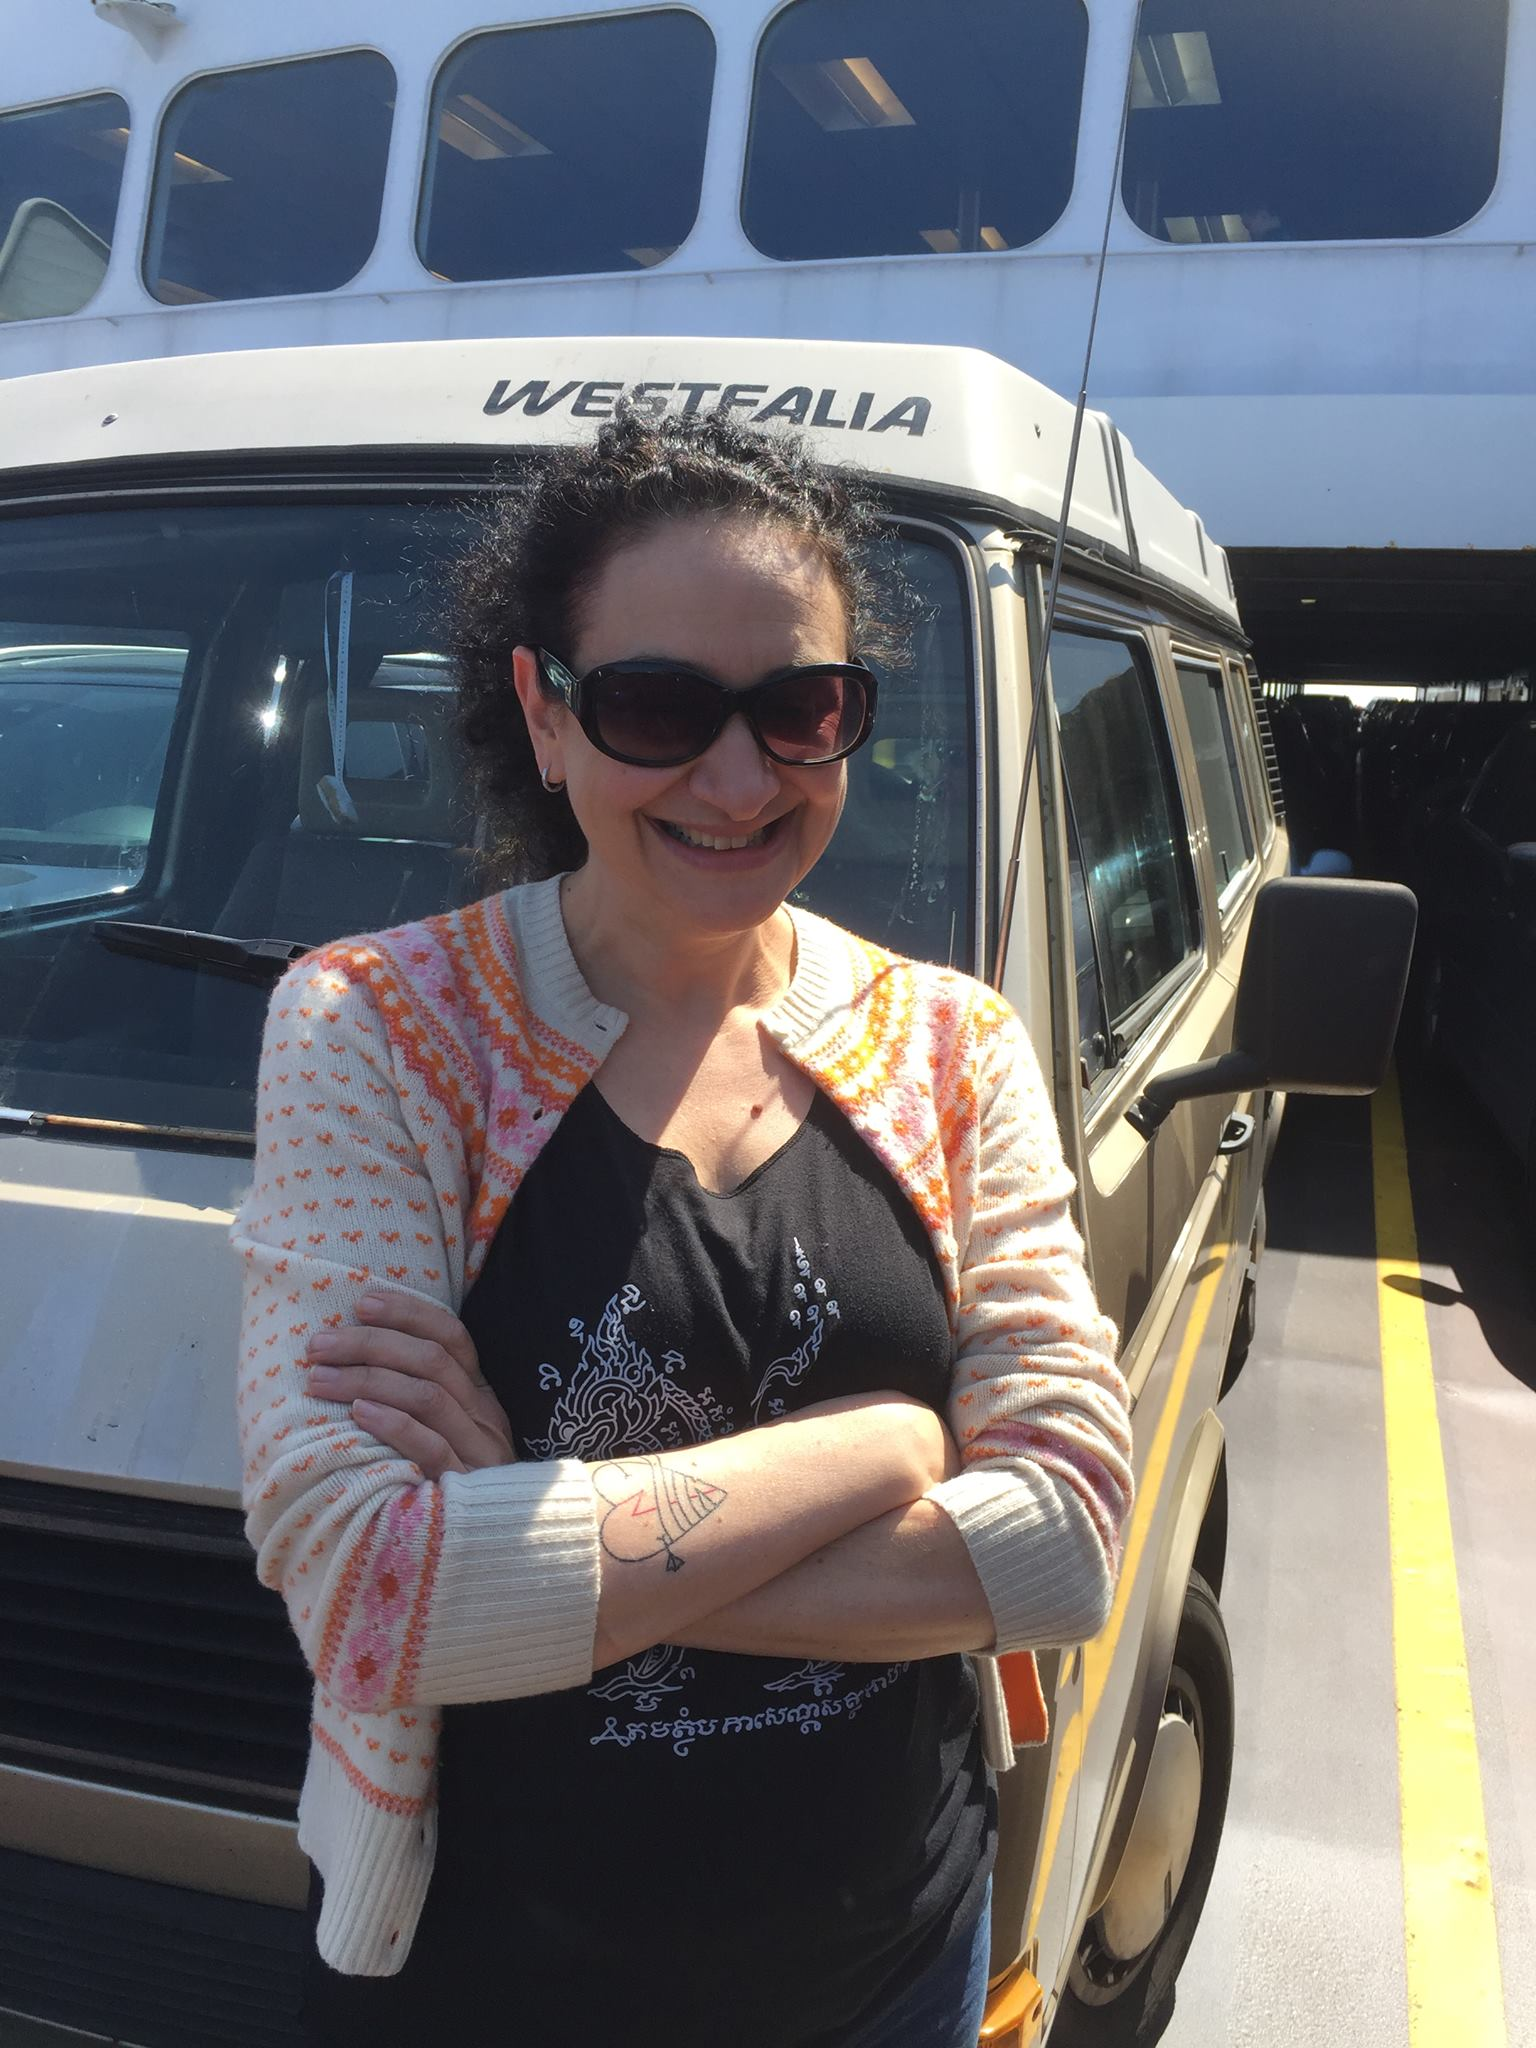 Westfalia on the Ferry